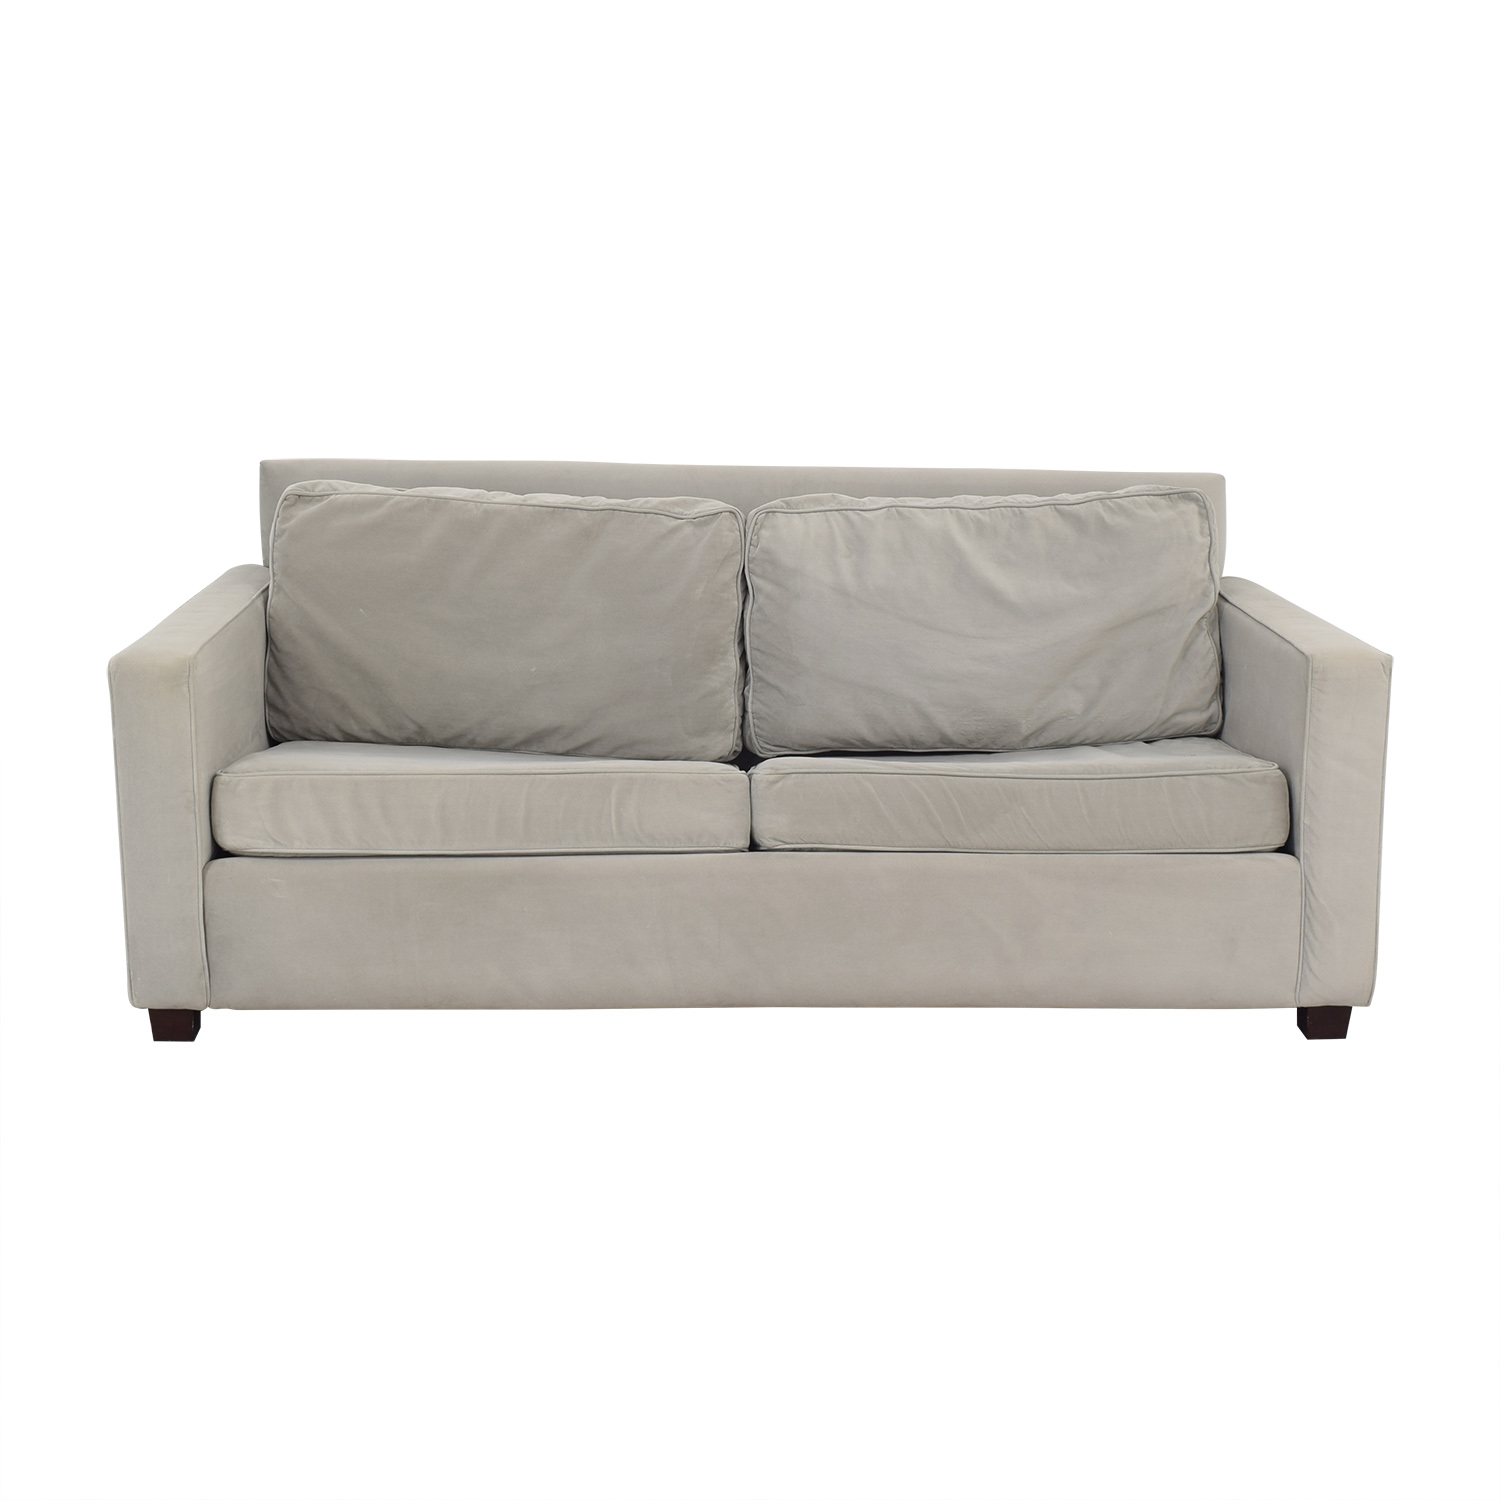 West Elm West Elm Henry Basic Queen Sleeper Sofa nyc